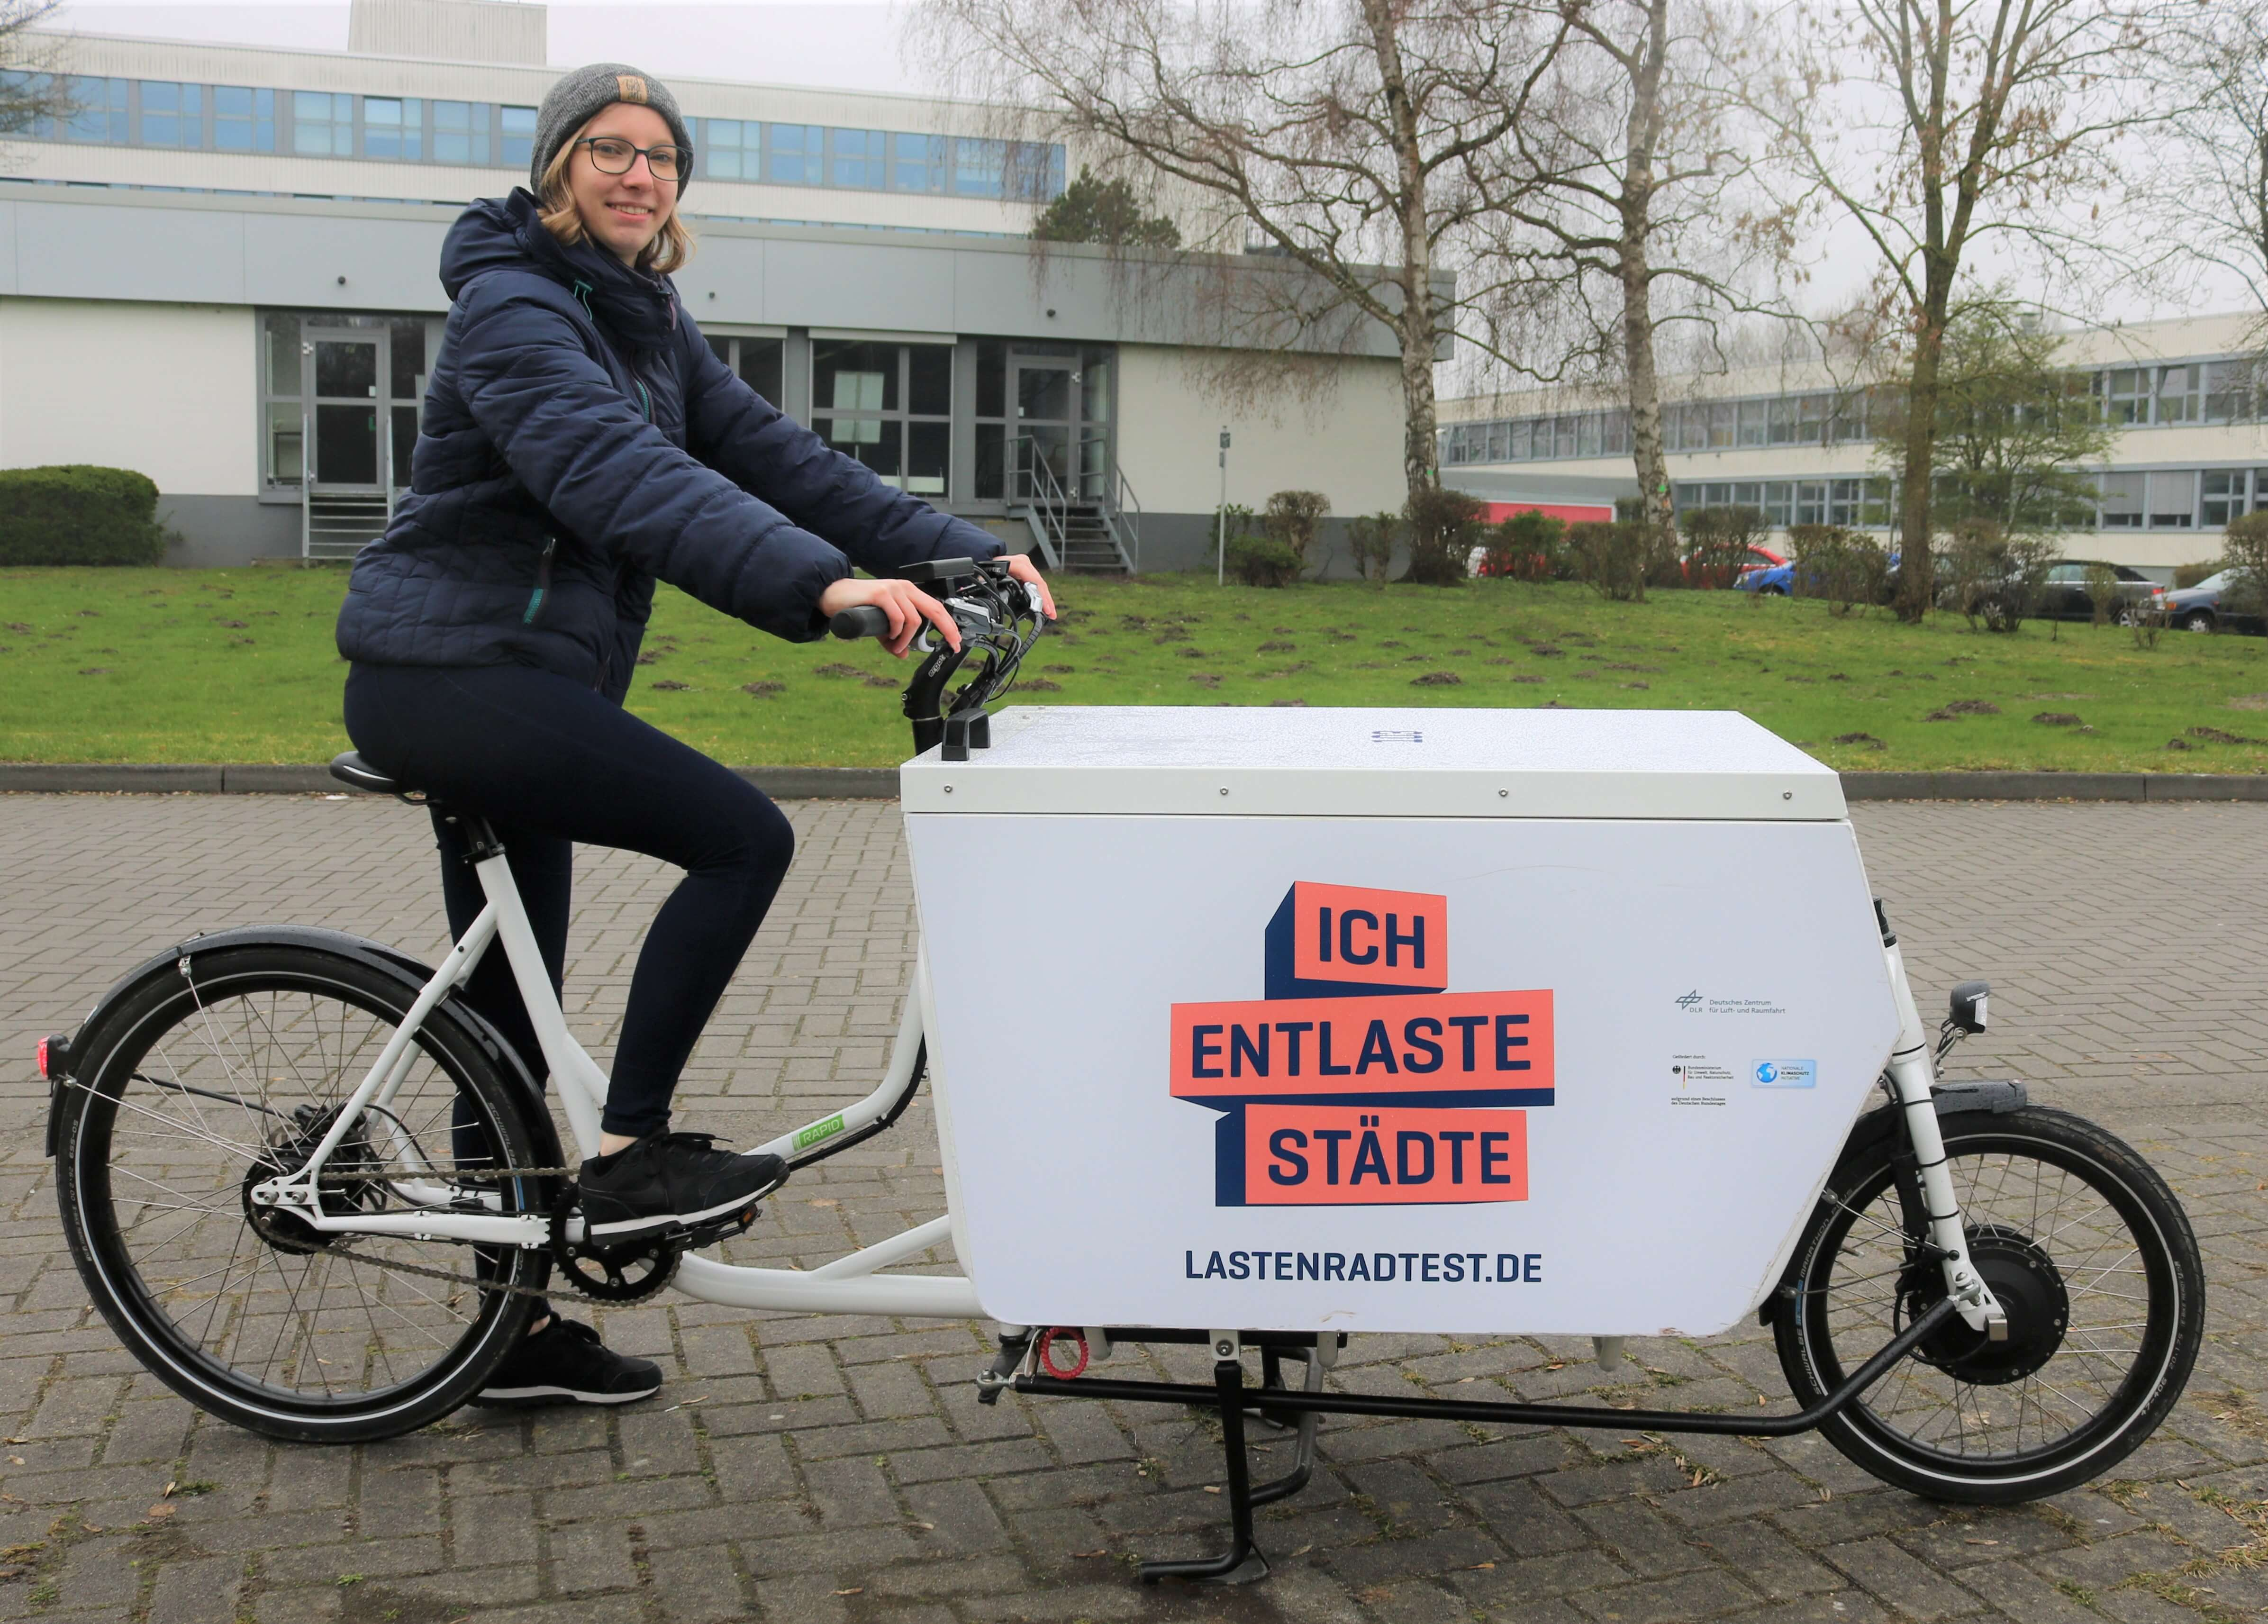 Ein E-Lastenrad als alternatives Transportmittel?